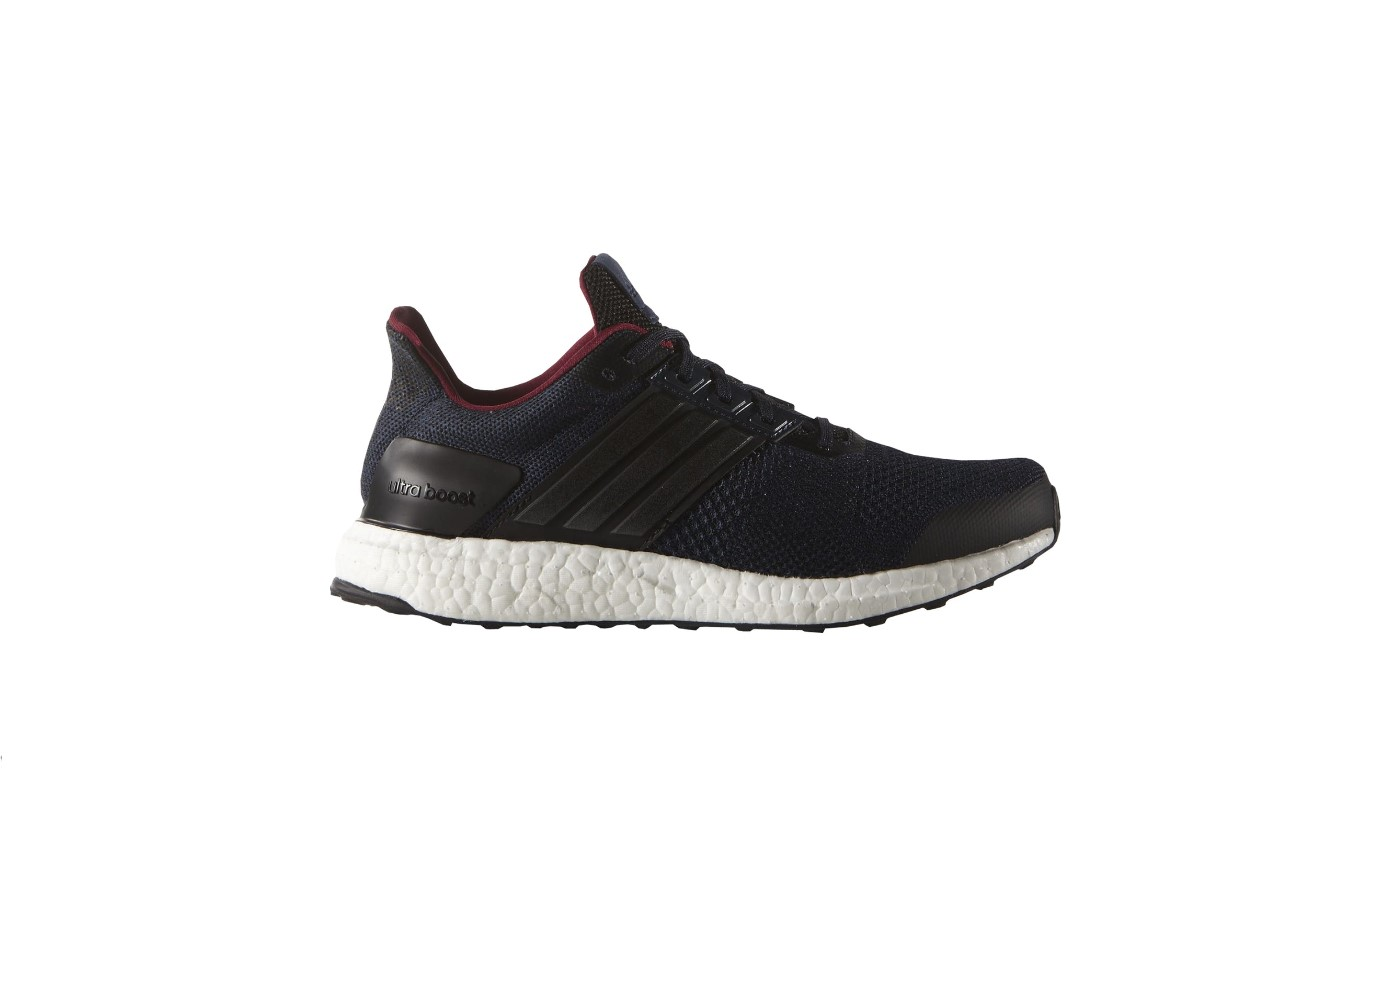 quality design f9443 16e5f Adidas UltraBOOST 3.0 Men s Running Shoes   Petrol Blue